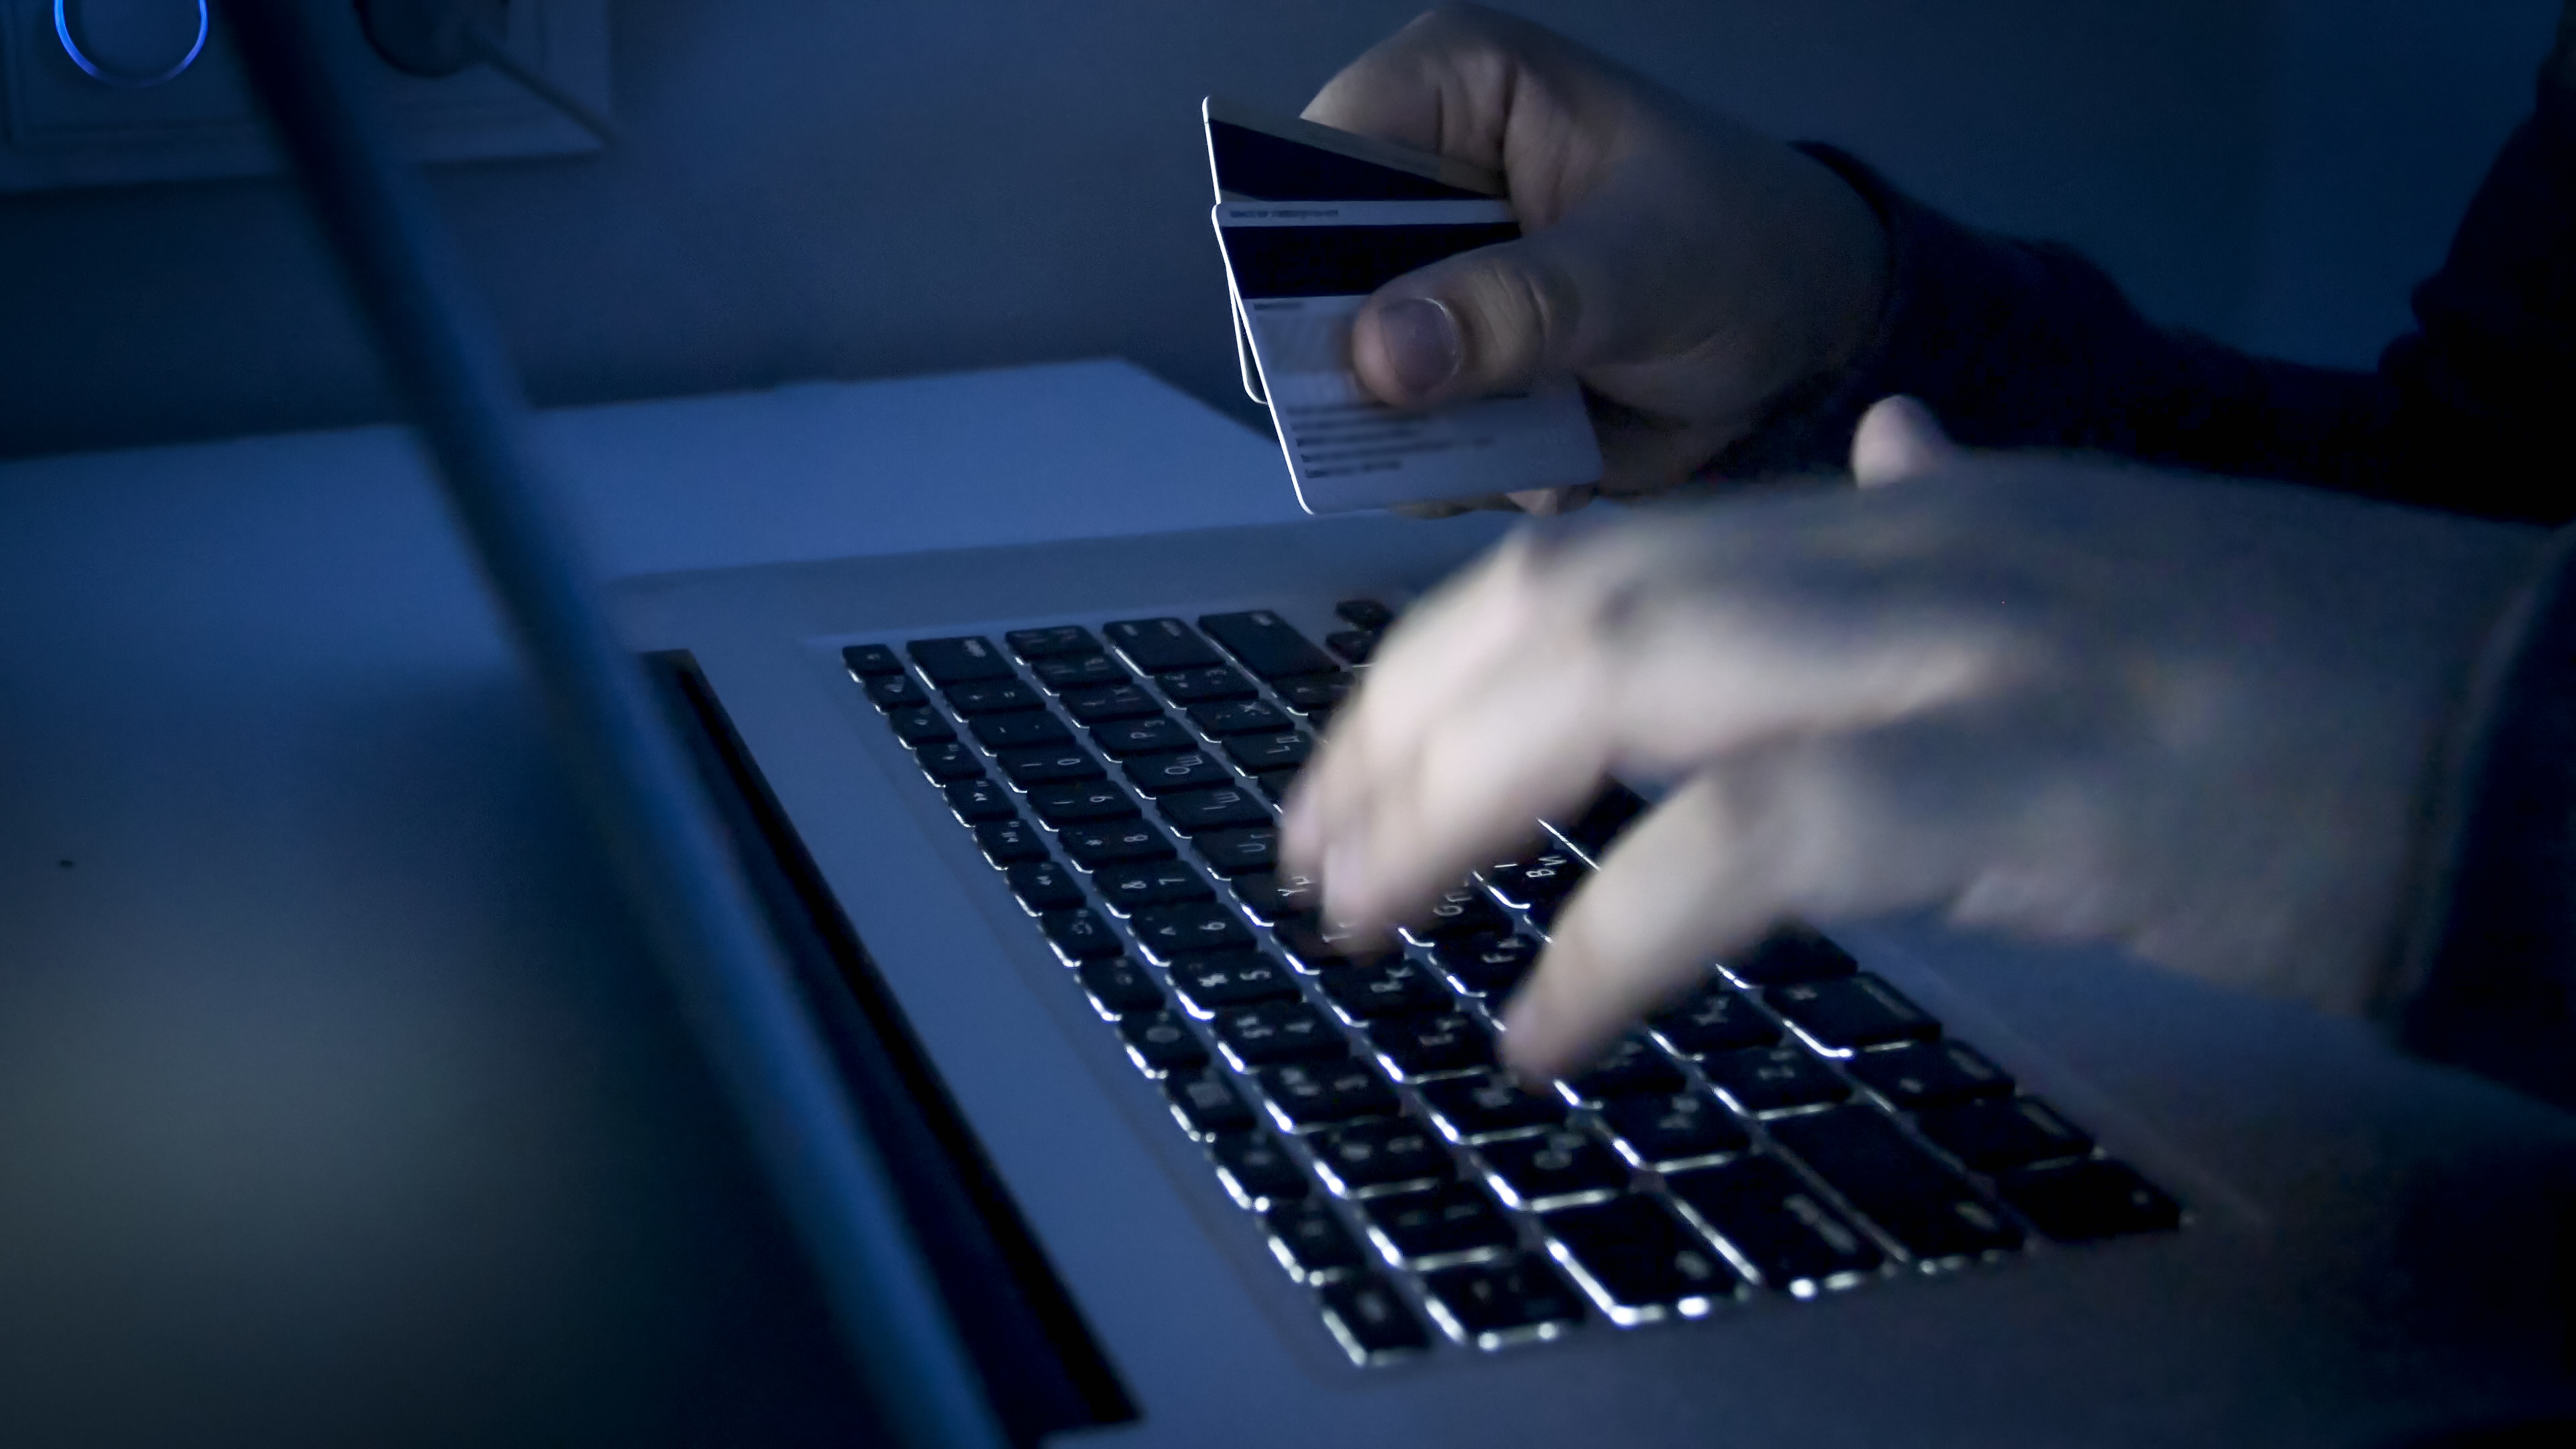 FICO Data: 10 Percent More Debit Cards Were Compromised in U.S. Last Year